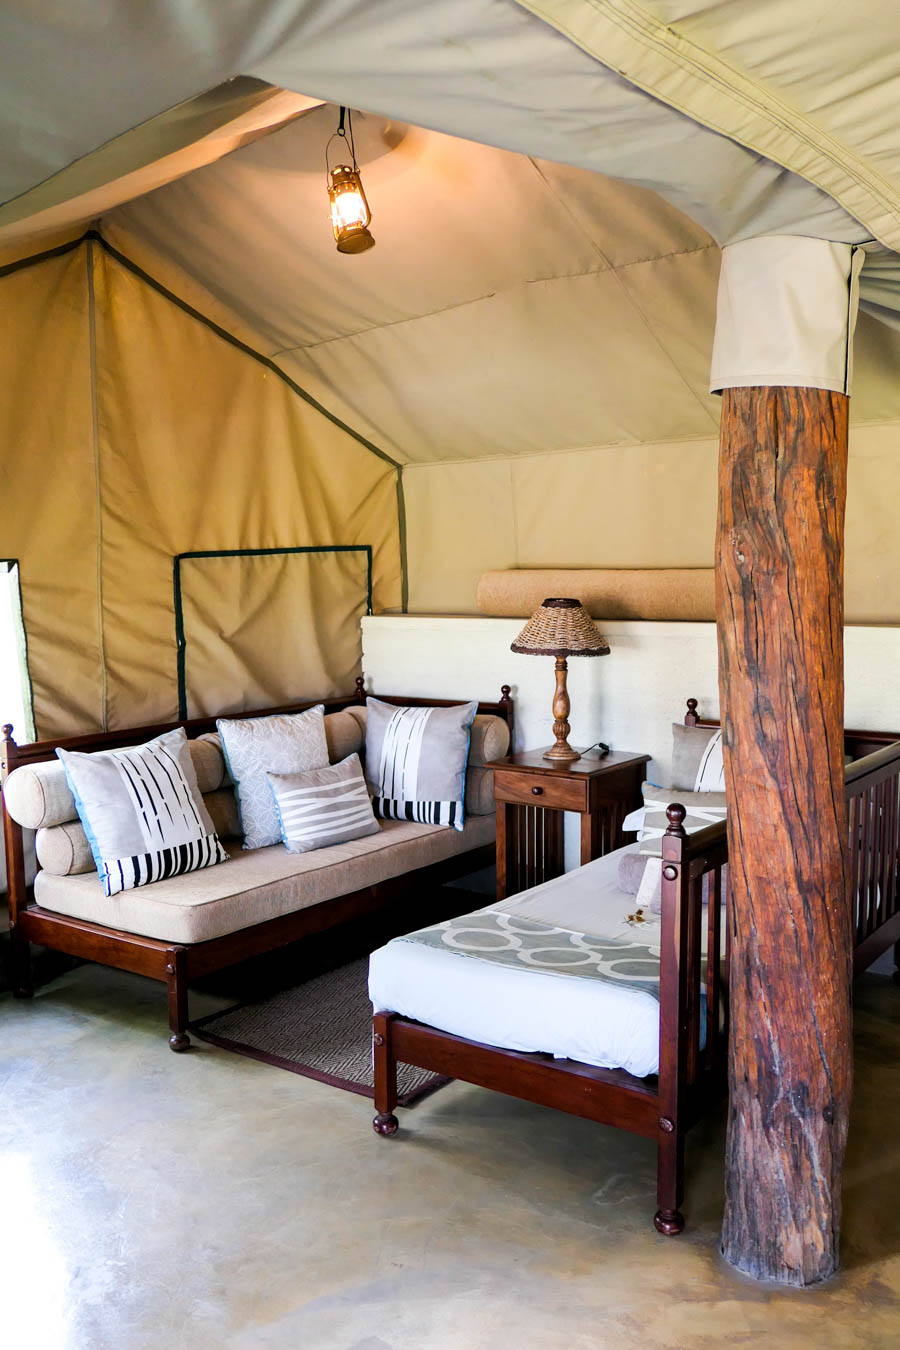 Where to Stay in Hwange National Park - The Hide Photo Review